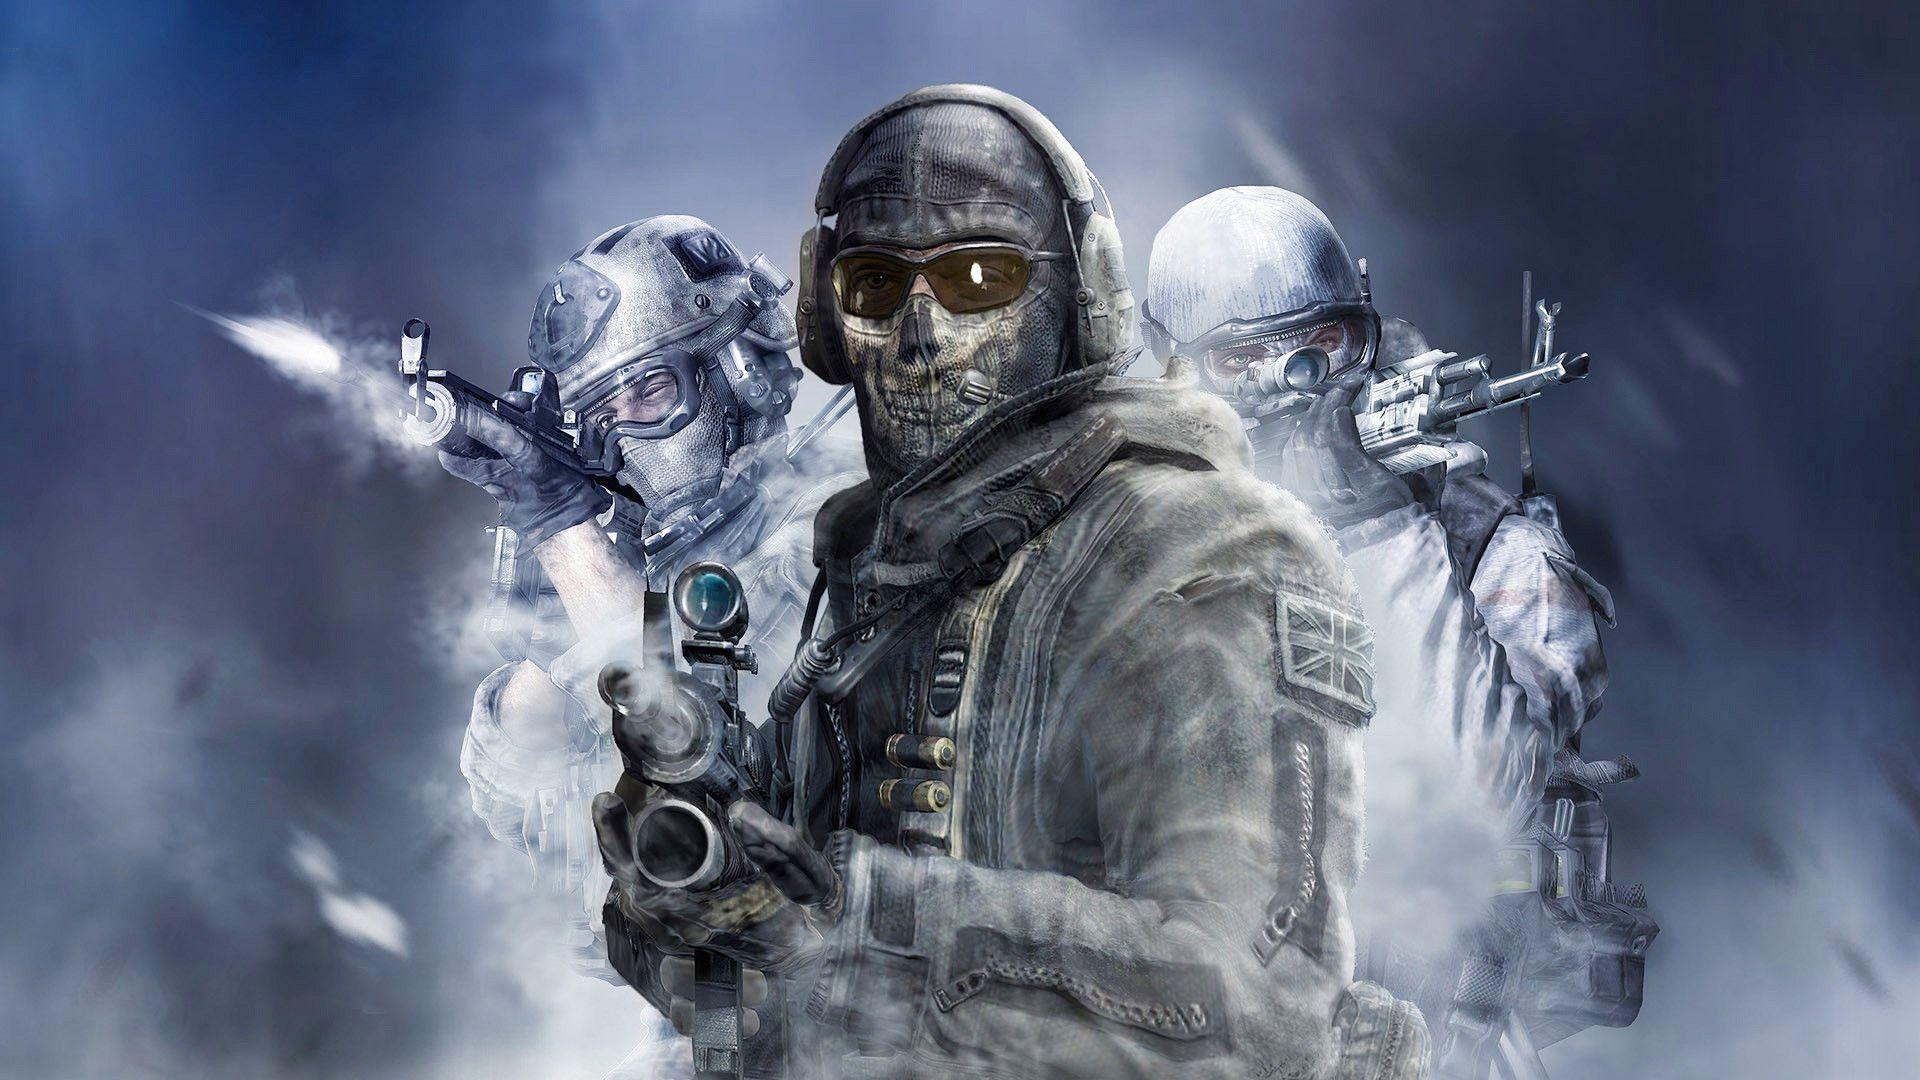 Call Of Duty Ghosts Wallpapers 1920x1080 In HD